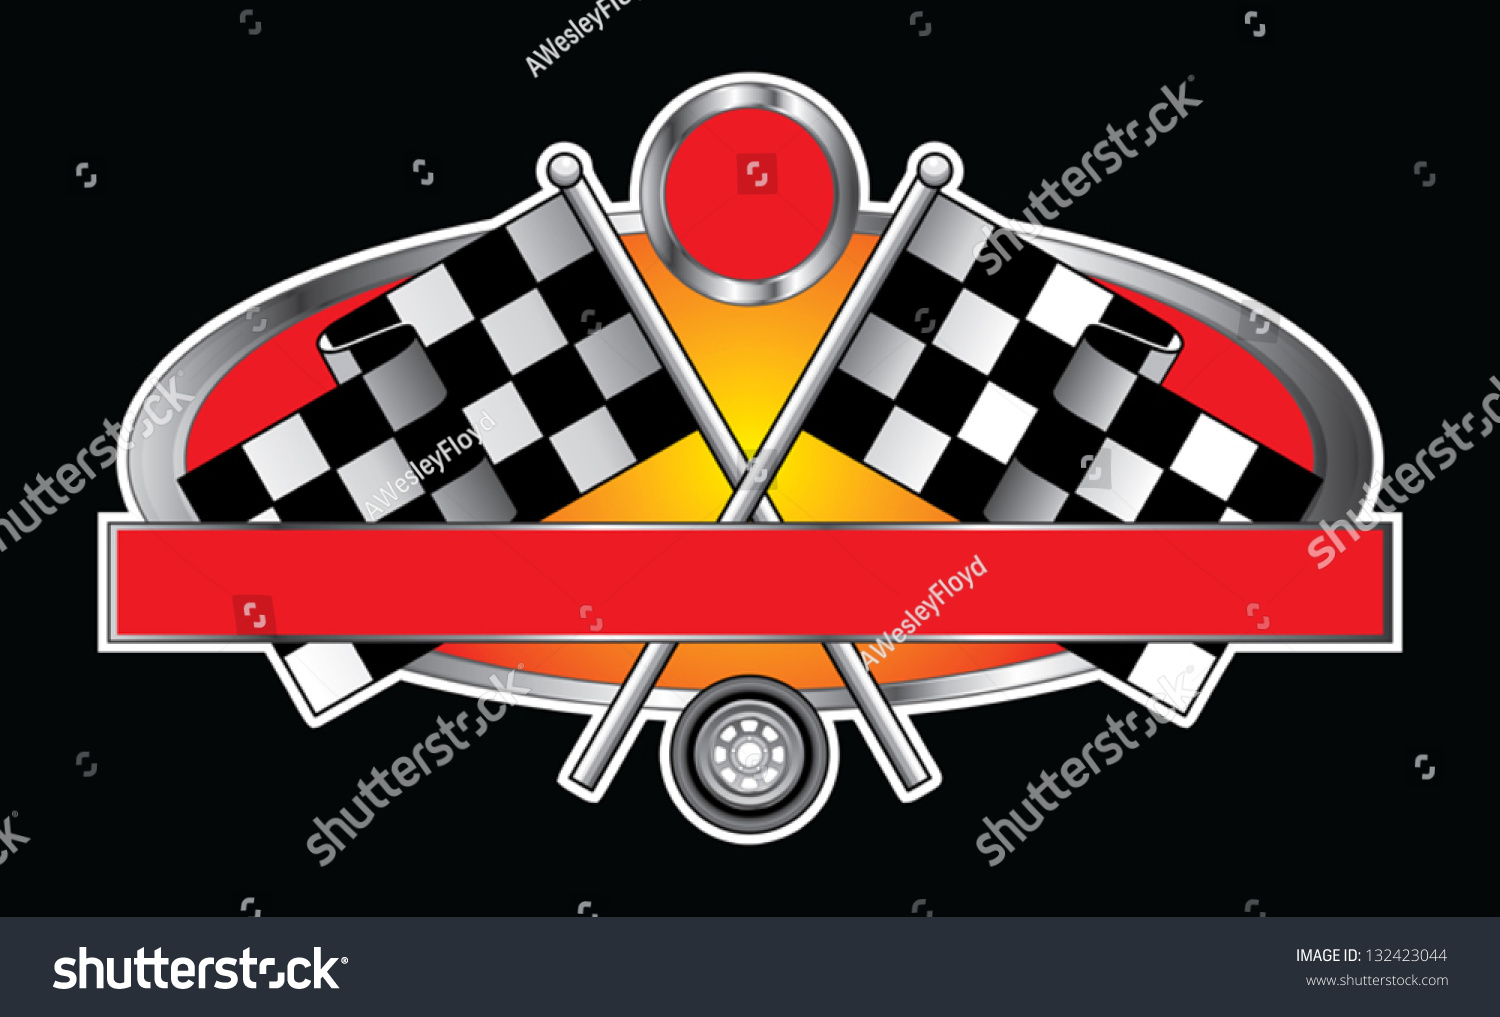 Desain t shirt racing - Racing Design With Banner Is An Illustration Of A Racing Design With Race Flags Wheel